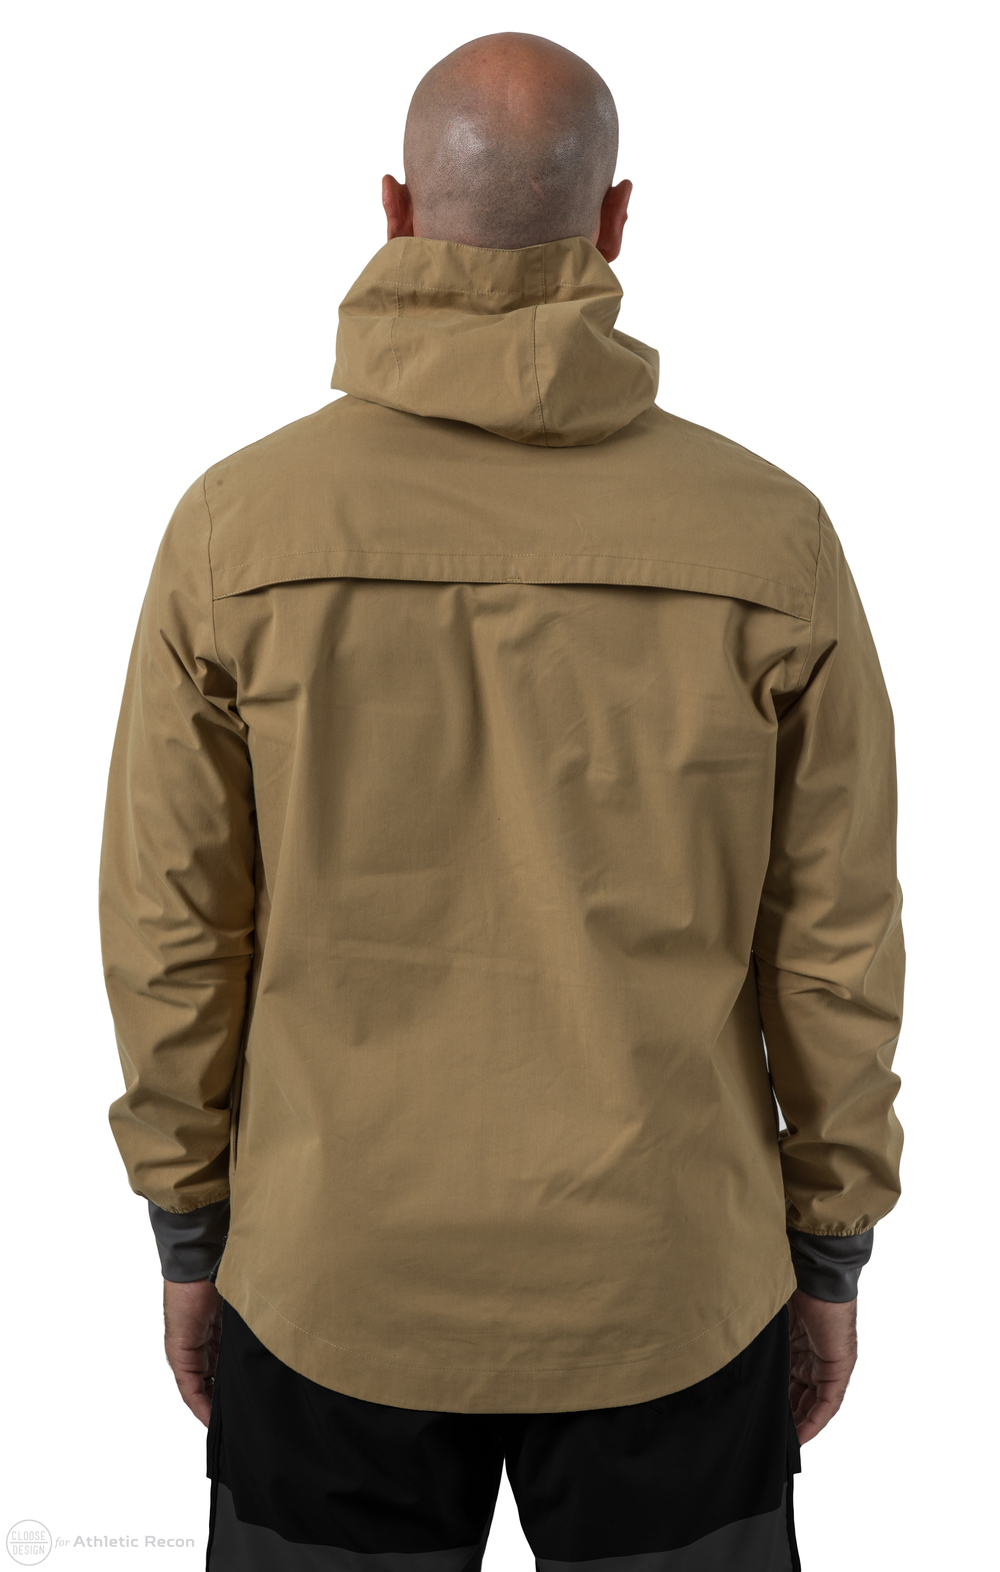 9_camel-jacket-back.jpg